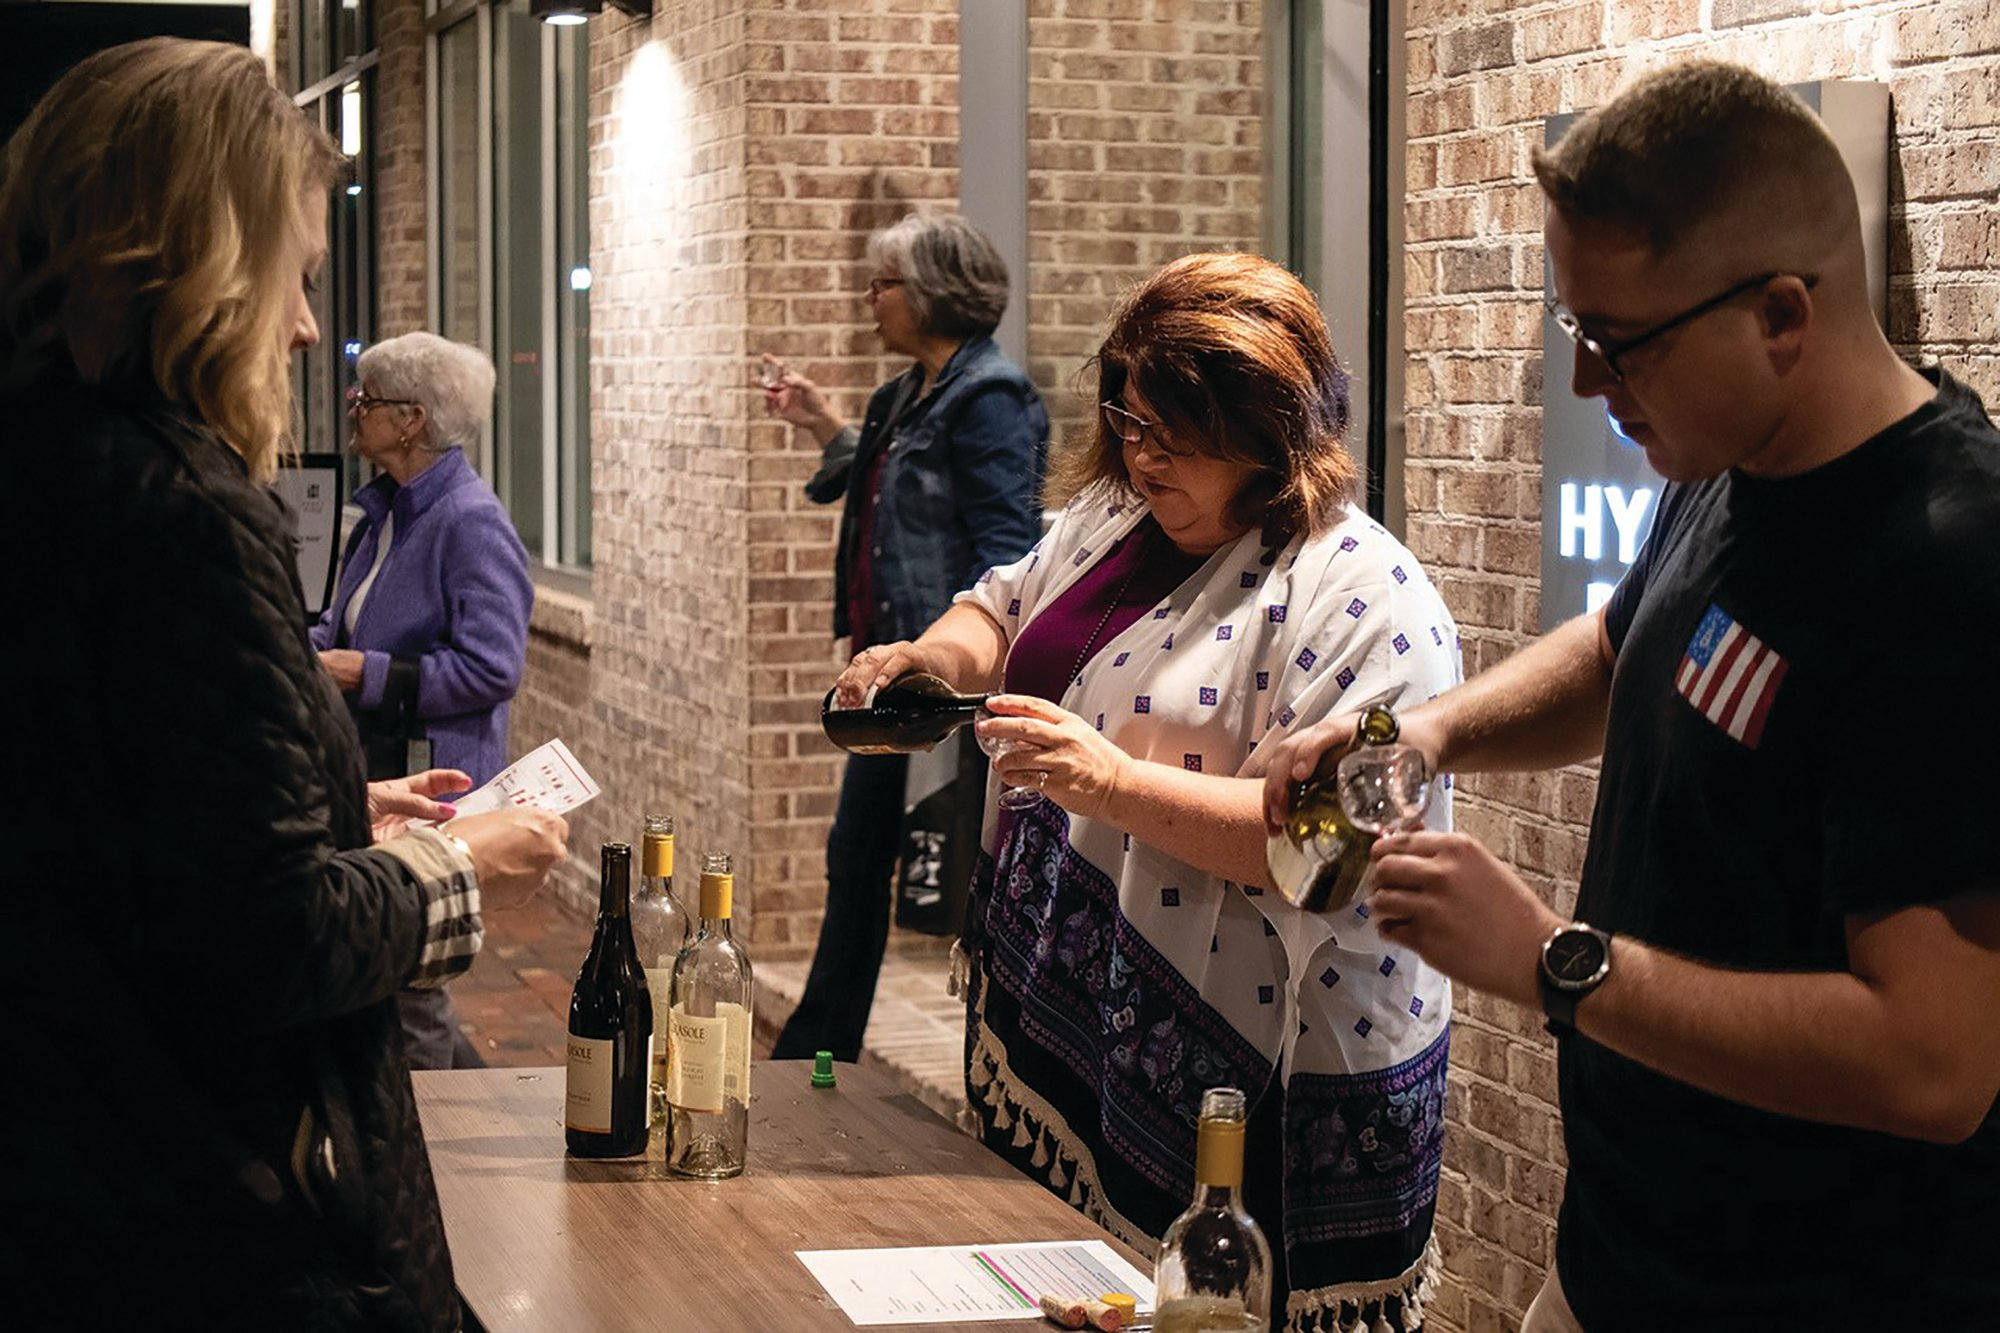 Guests at the 2018 Sip and Scream fundraiser for Sumter Senior Services could taste more than two dozen wines at downtown venues, including Hyatt Place Hotel, seen in this photo.